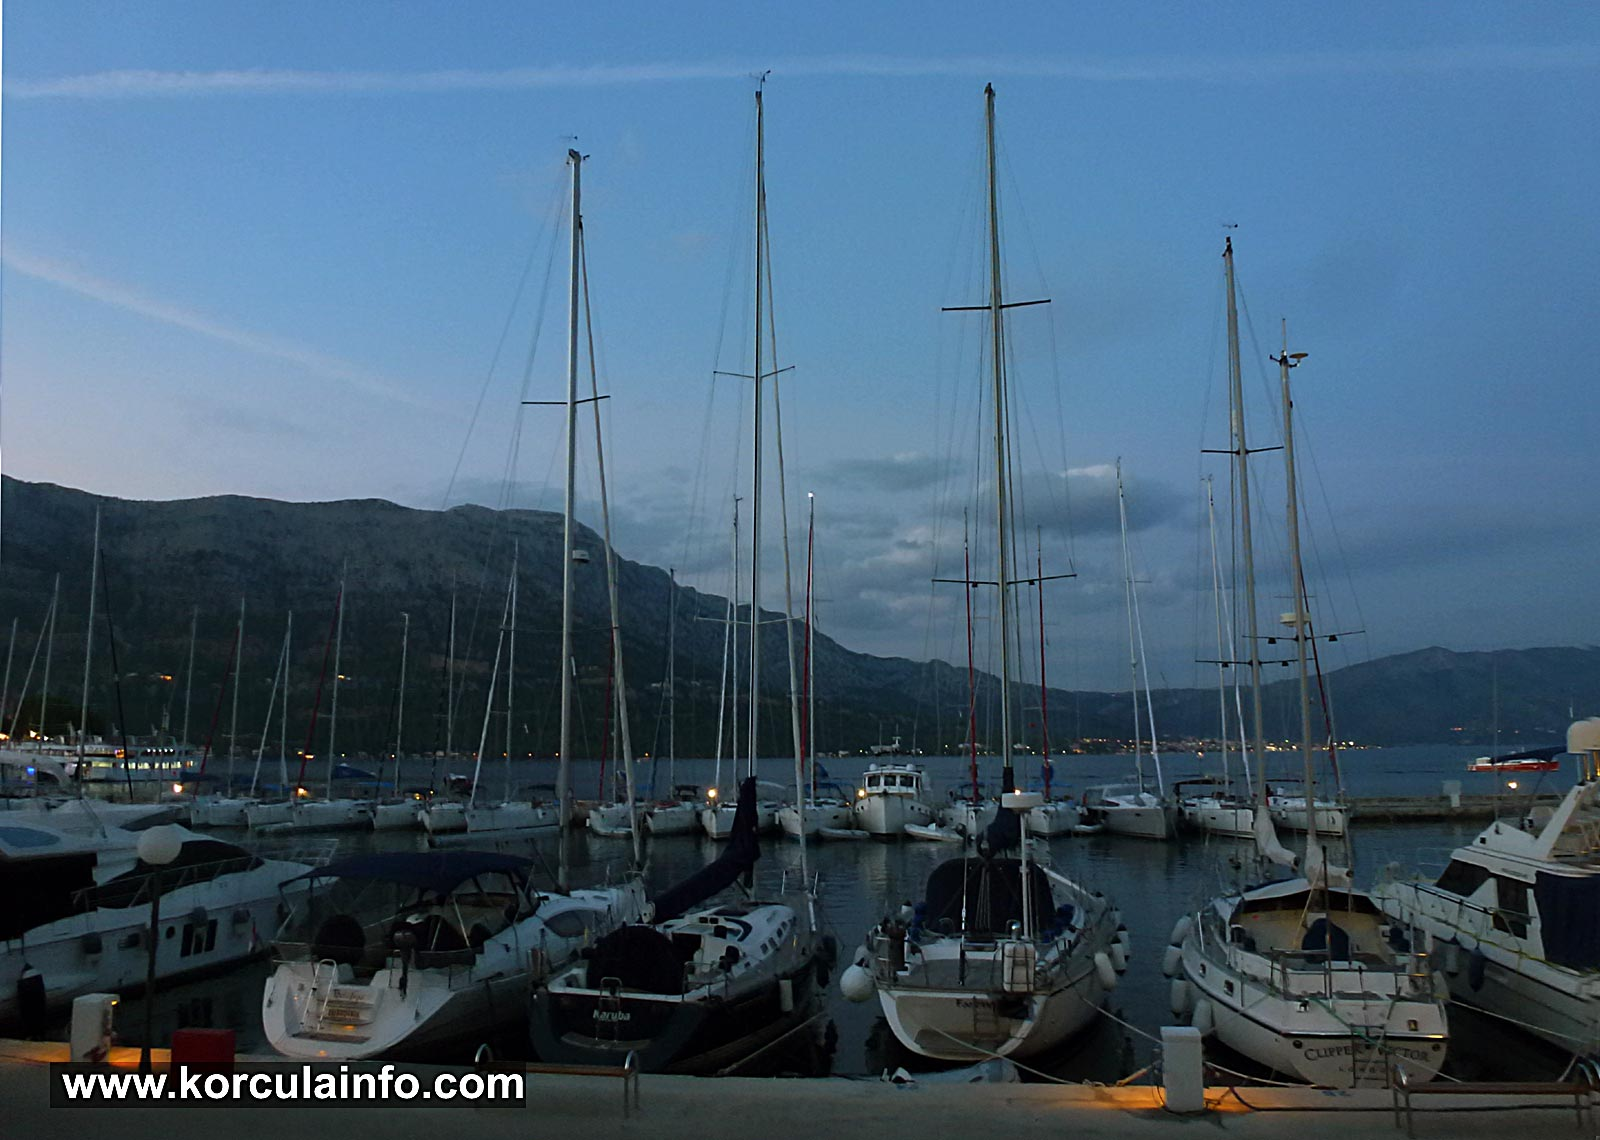 Sailing Boats in Korcula Marina